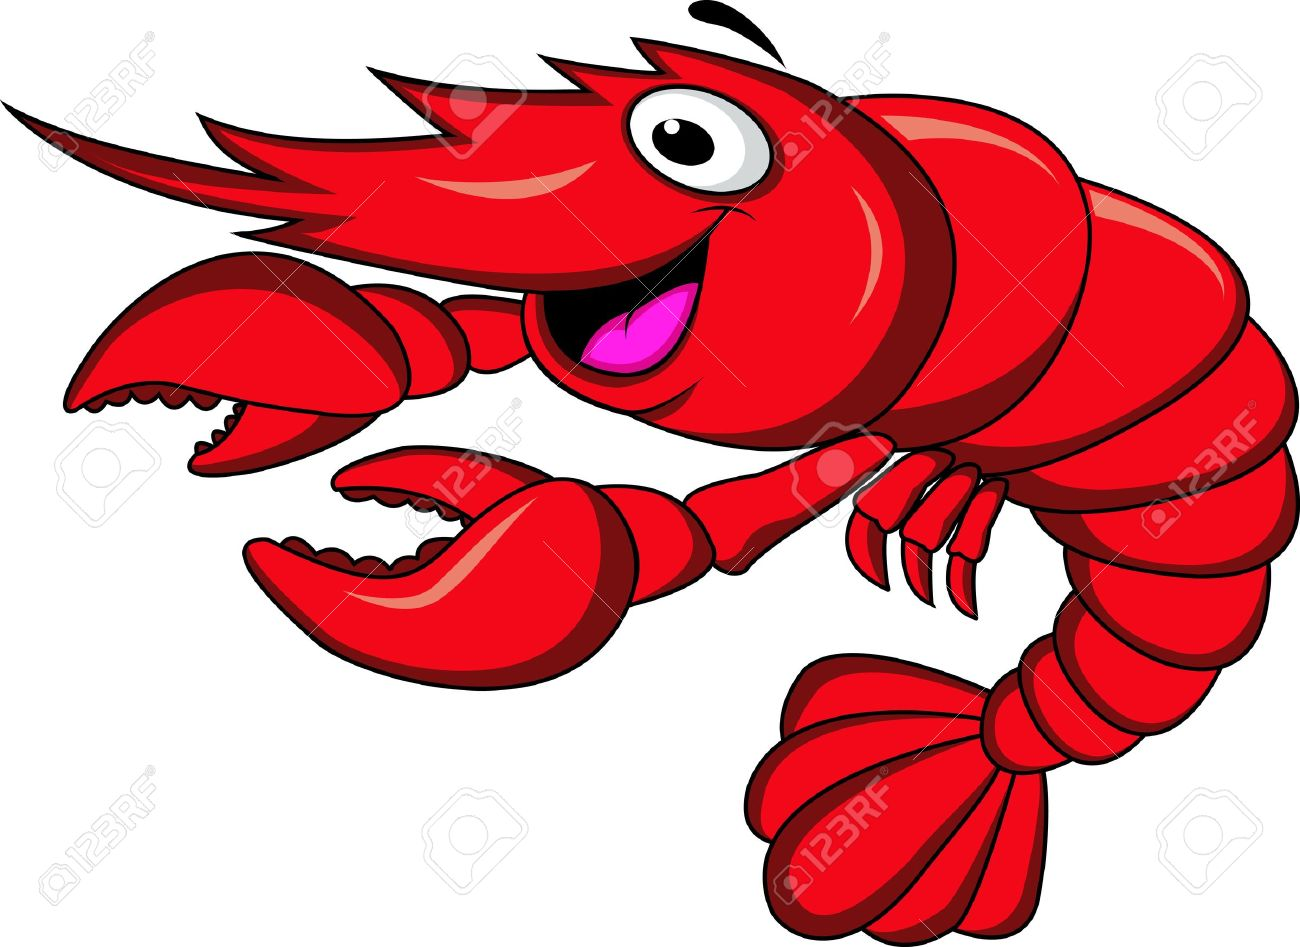 1300x947 Lobster Clipart Shrimp